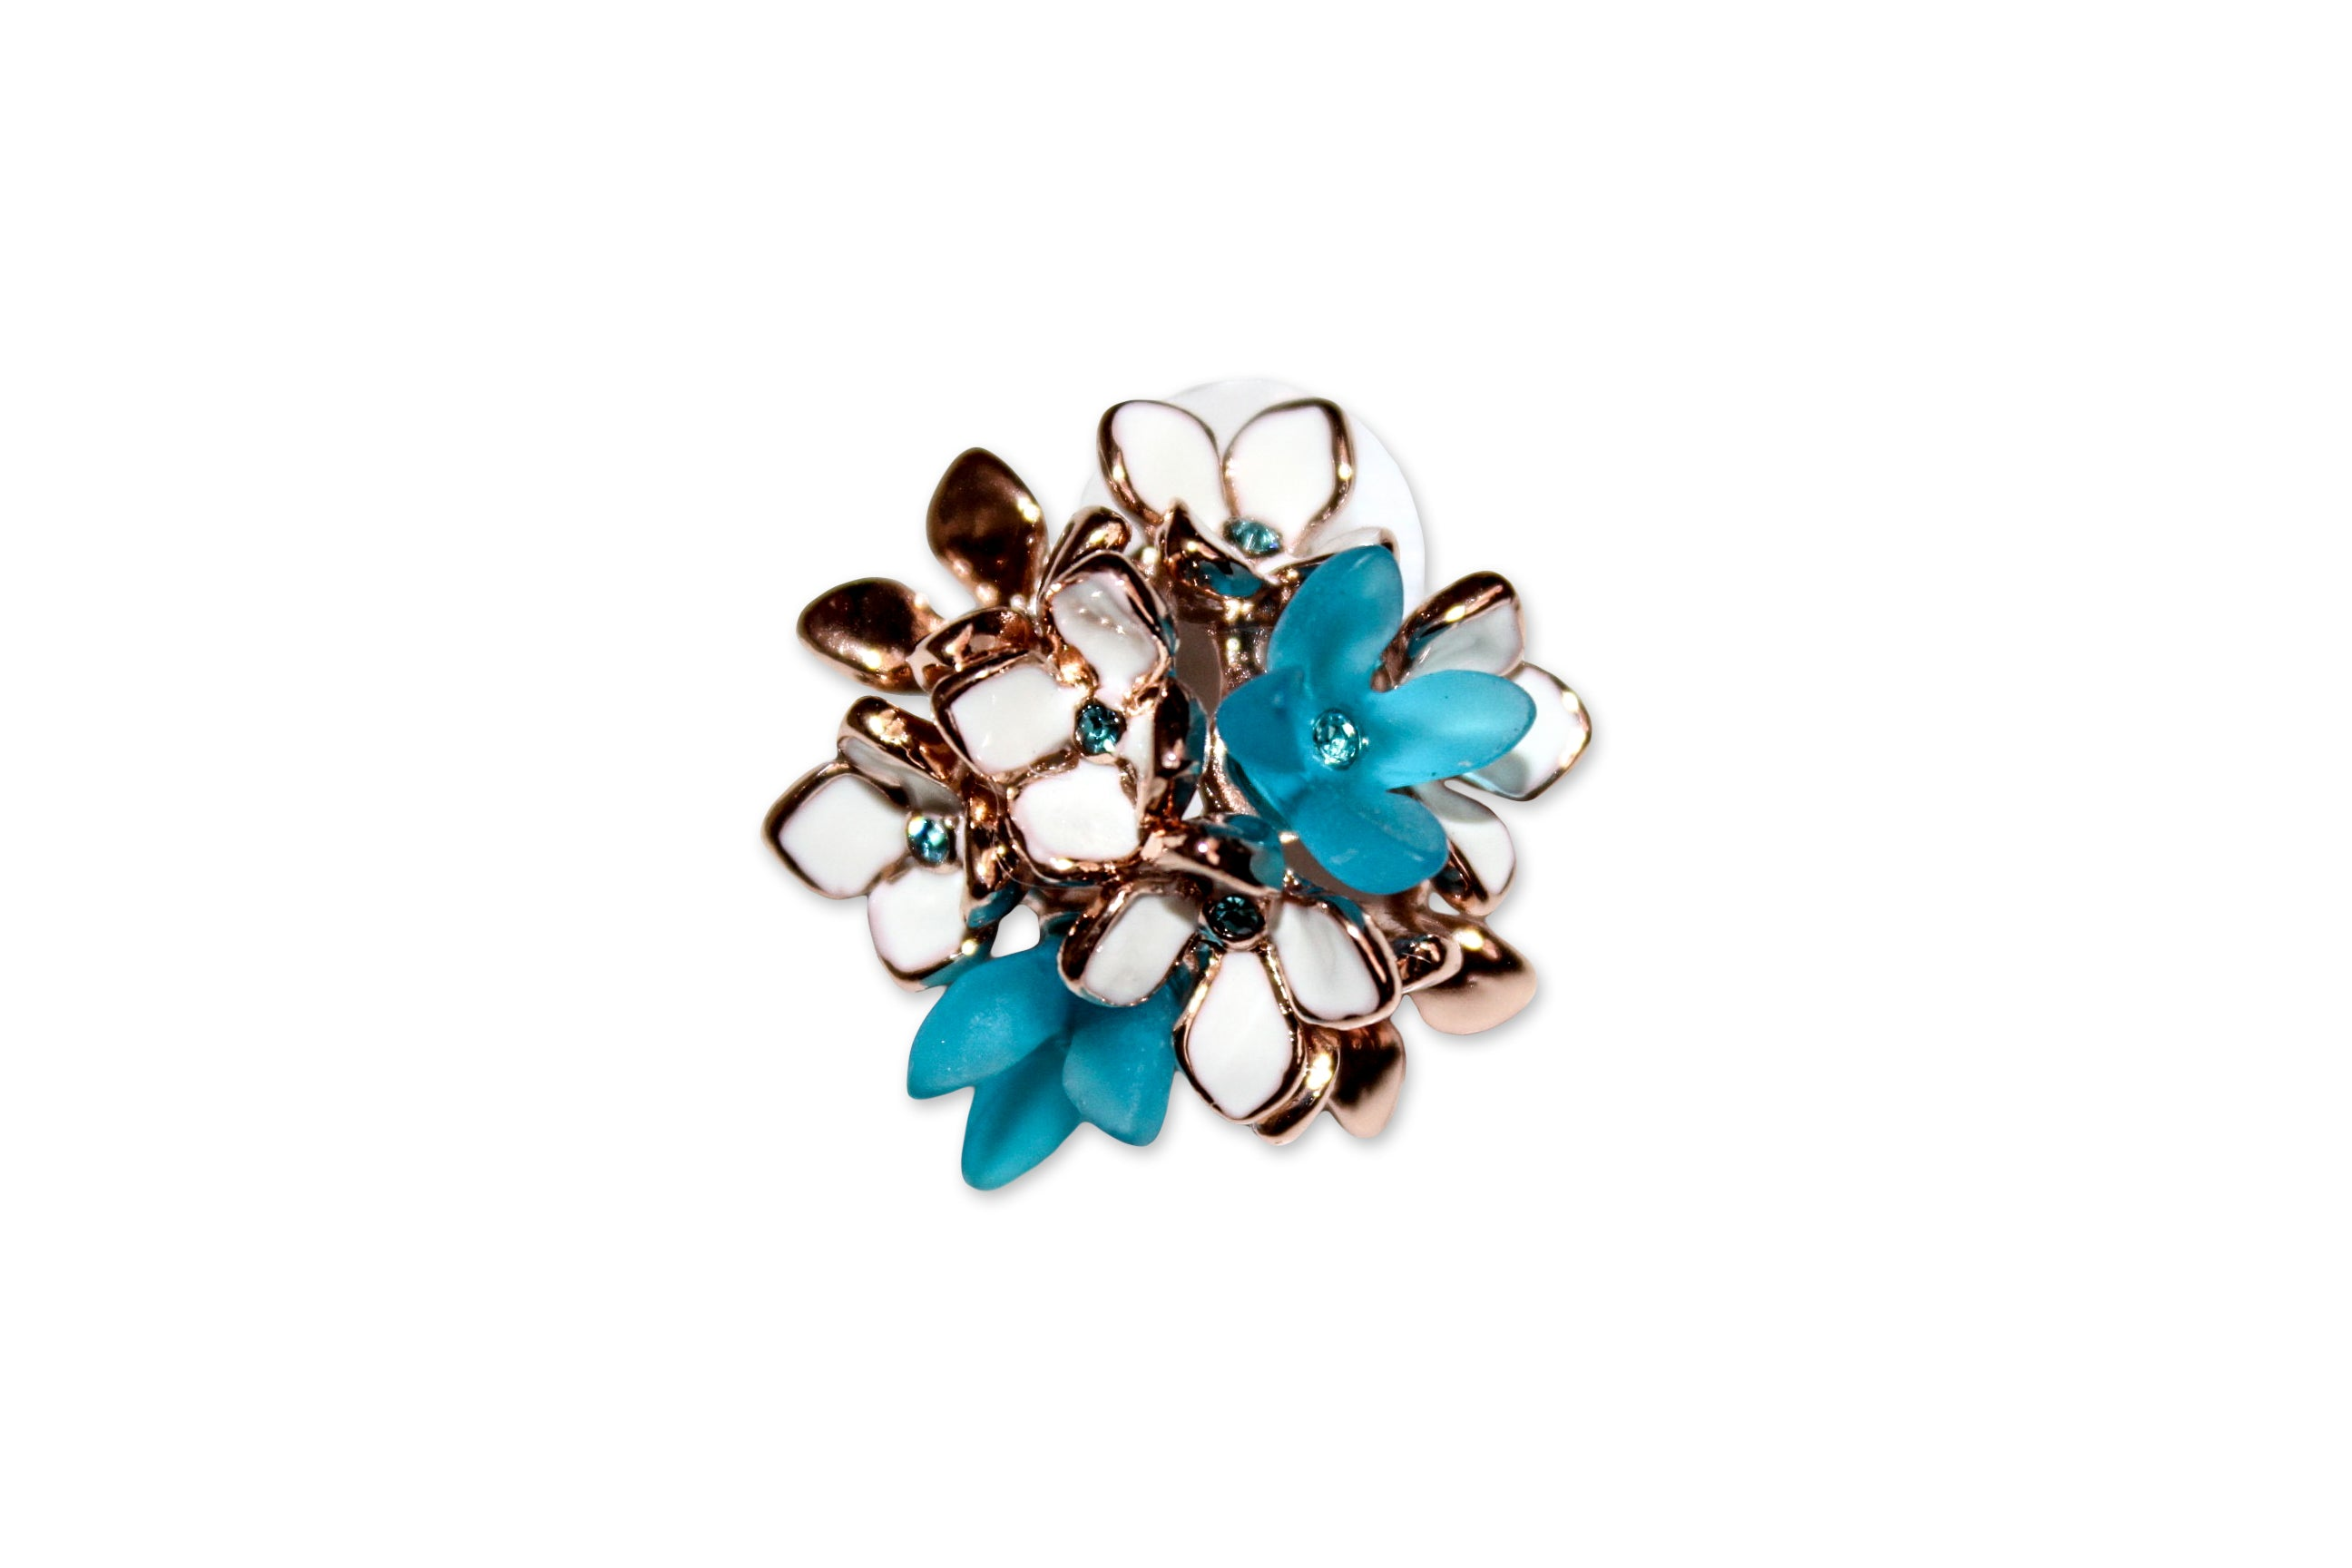 Ying Cai _ Flower earrings 2